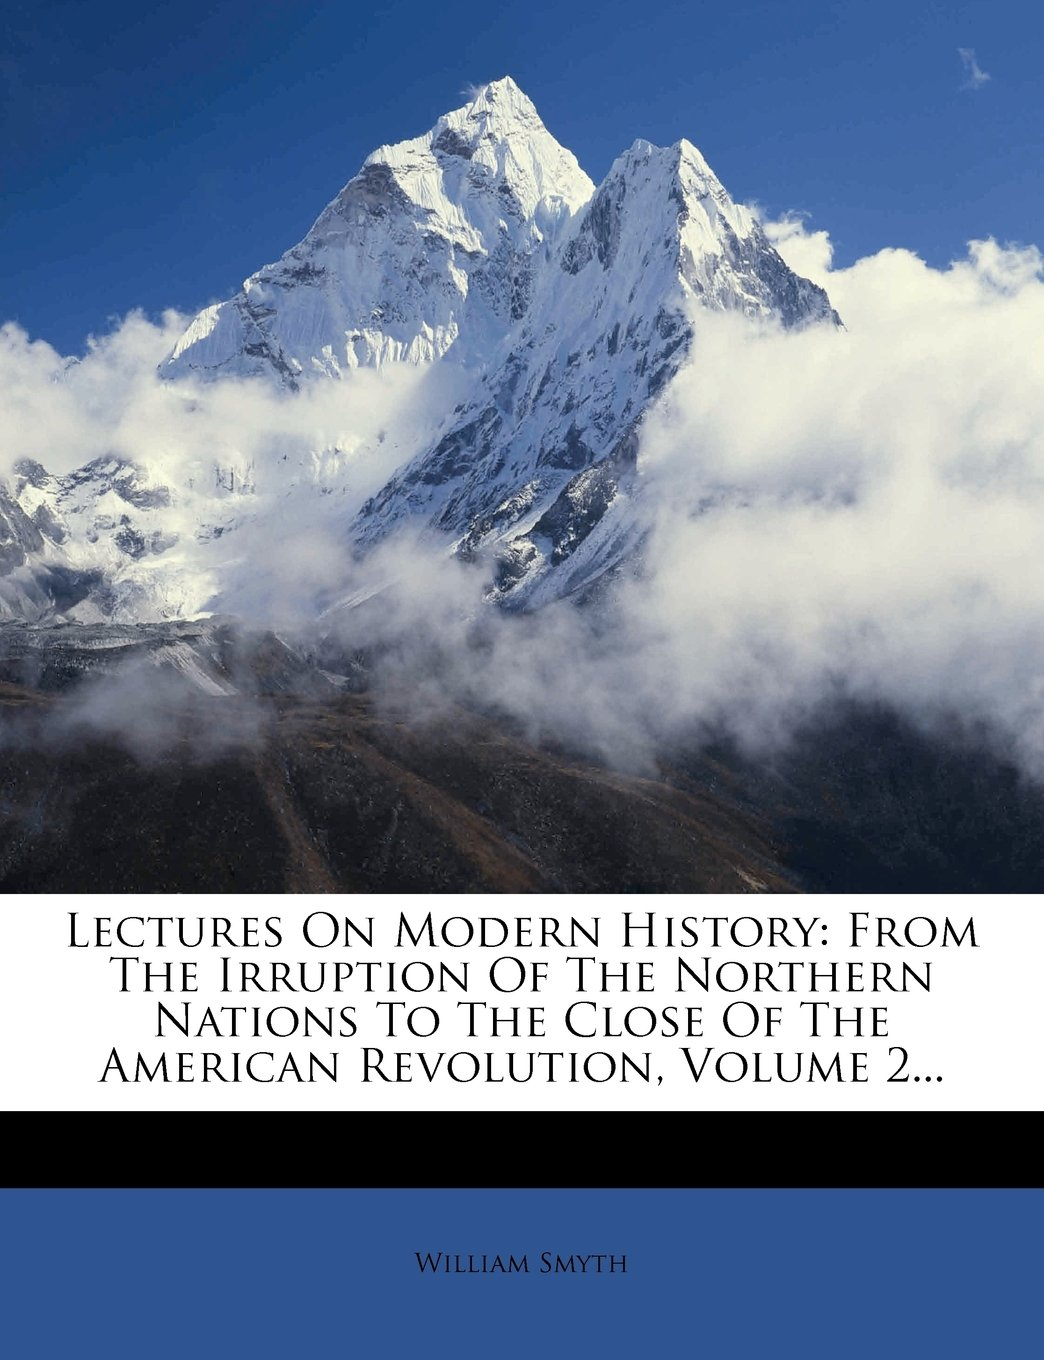 Lectures On Modern History: From The Irruption Of The Northern Nations To The Close Of The American Revolution, Volume 2... ebook